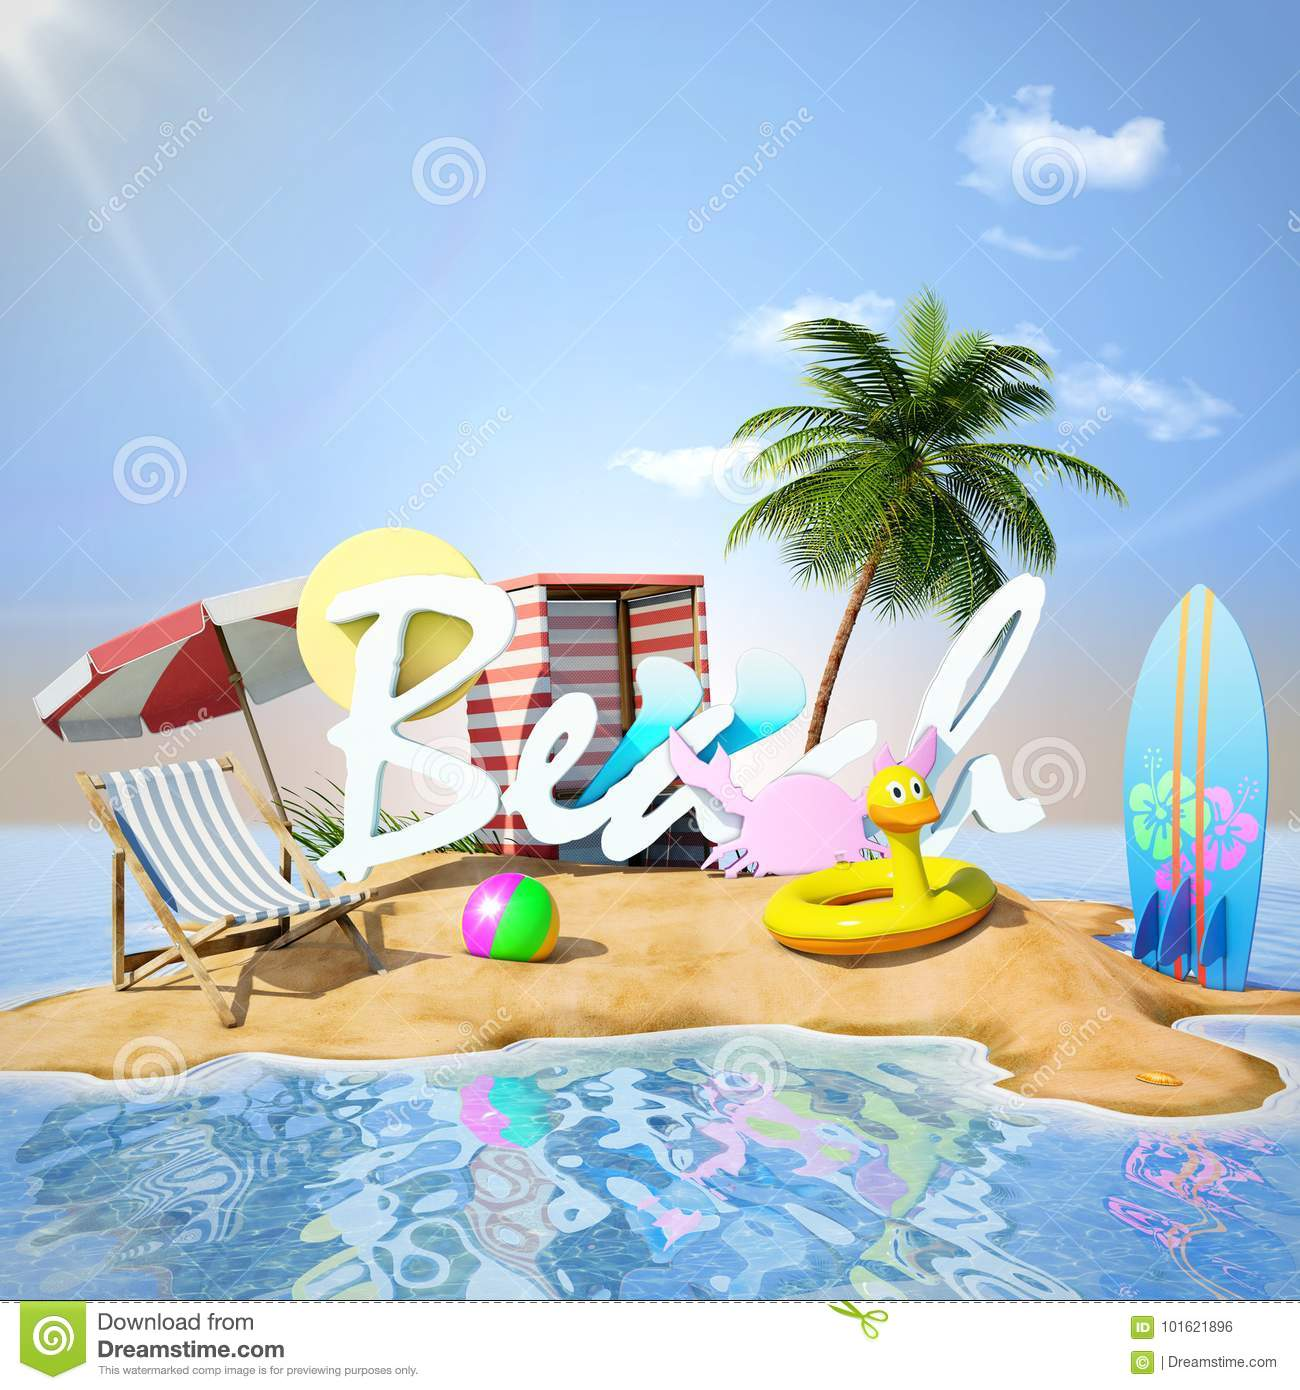 Deserted Island Beach: Desert Island Stock Illustration. Illustration Of Vacation